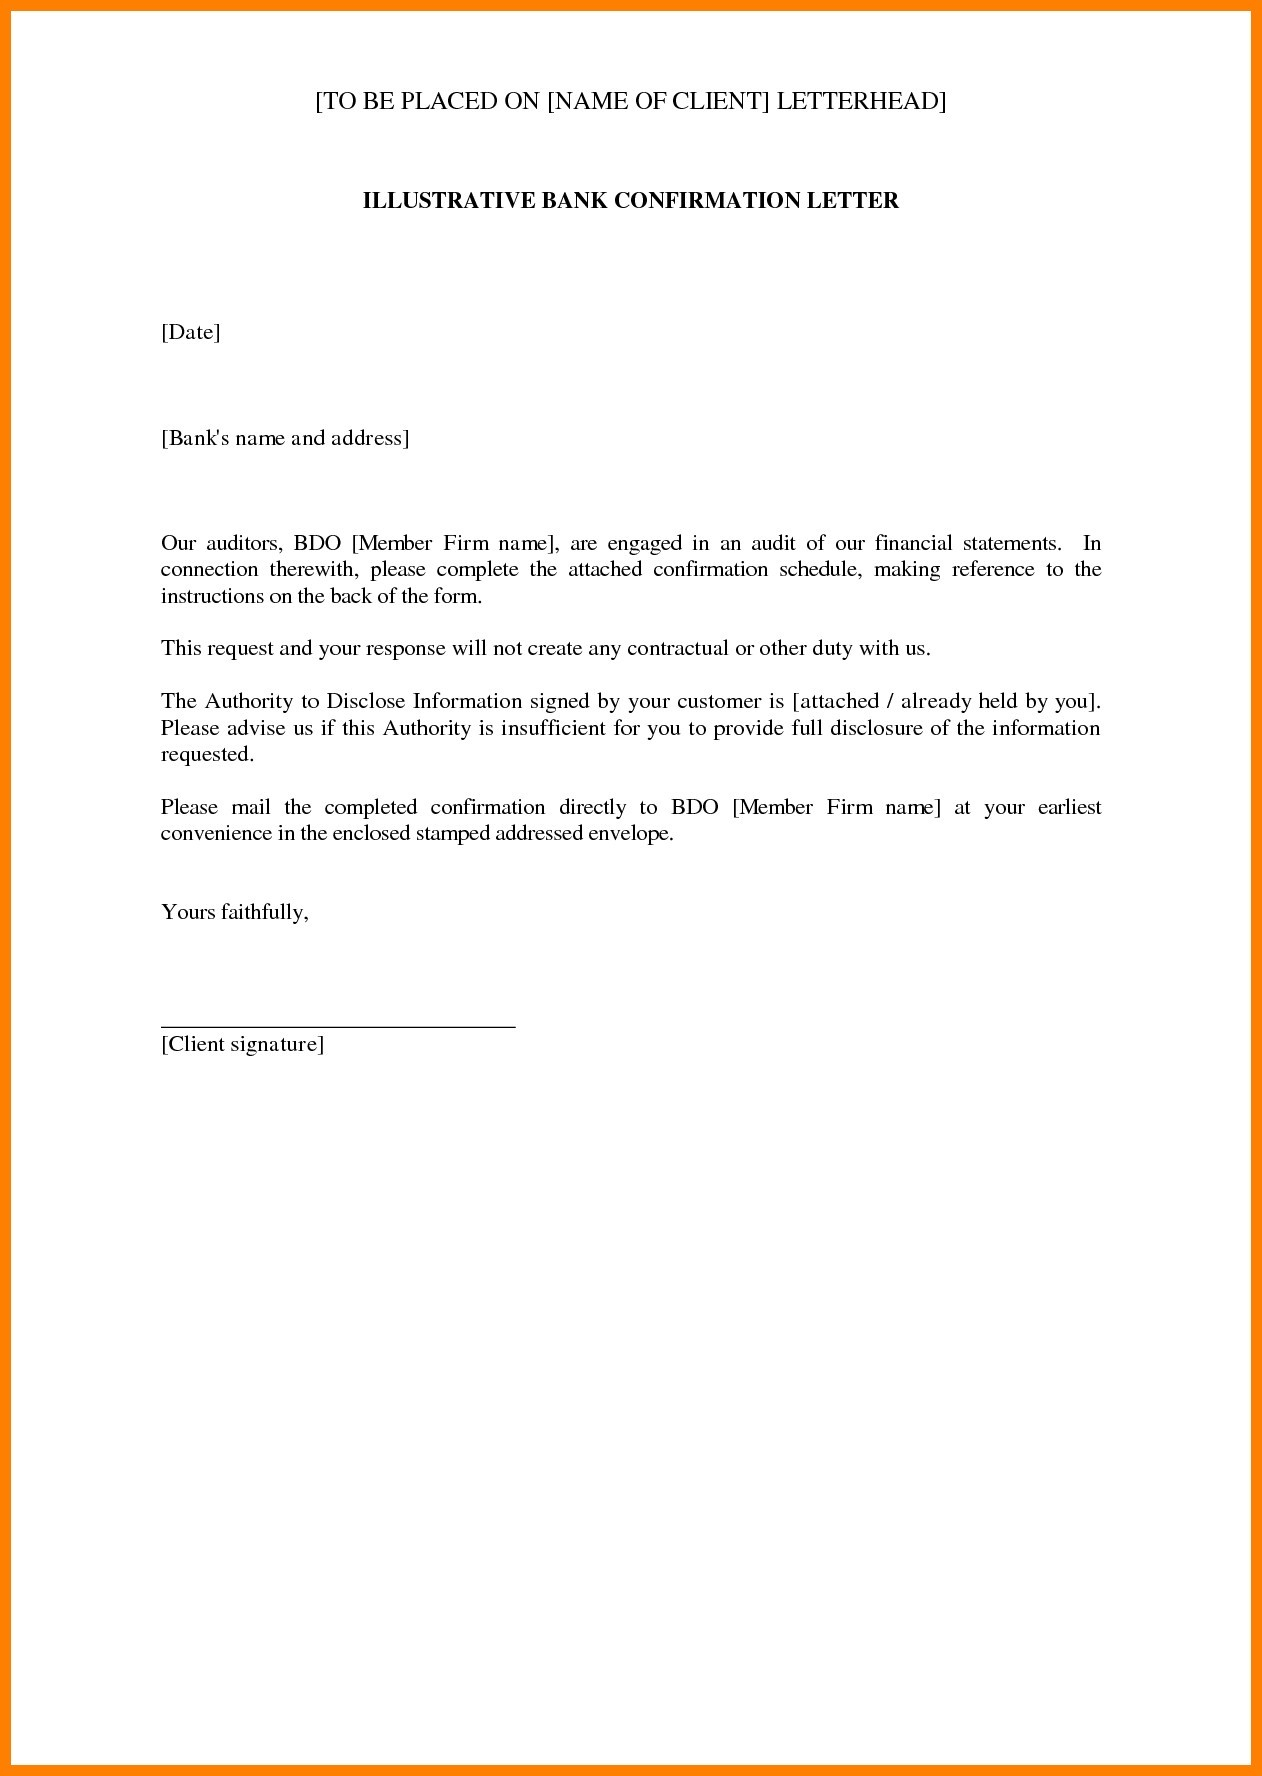 audit confirmation letter template Collection-Sample Confirmation New Sample Audit Letter In Bank New Bank Balance Confirmation 2-j